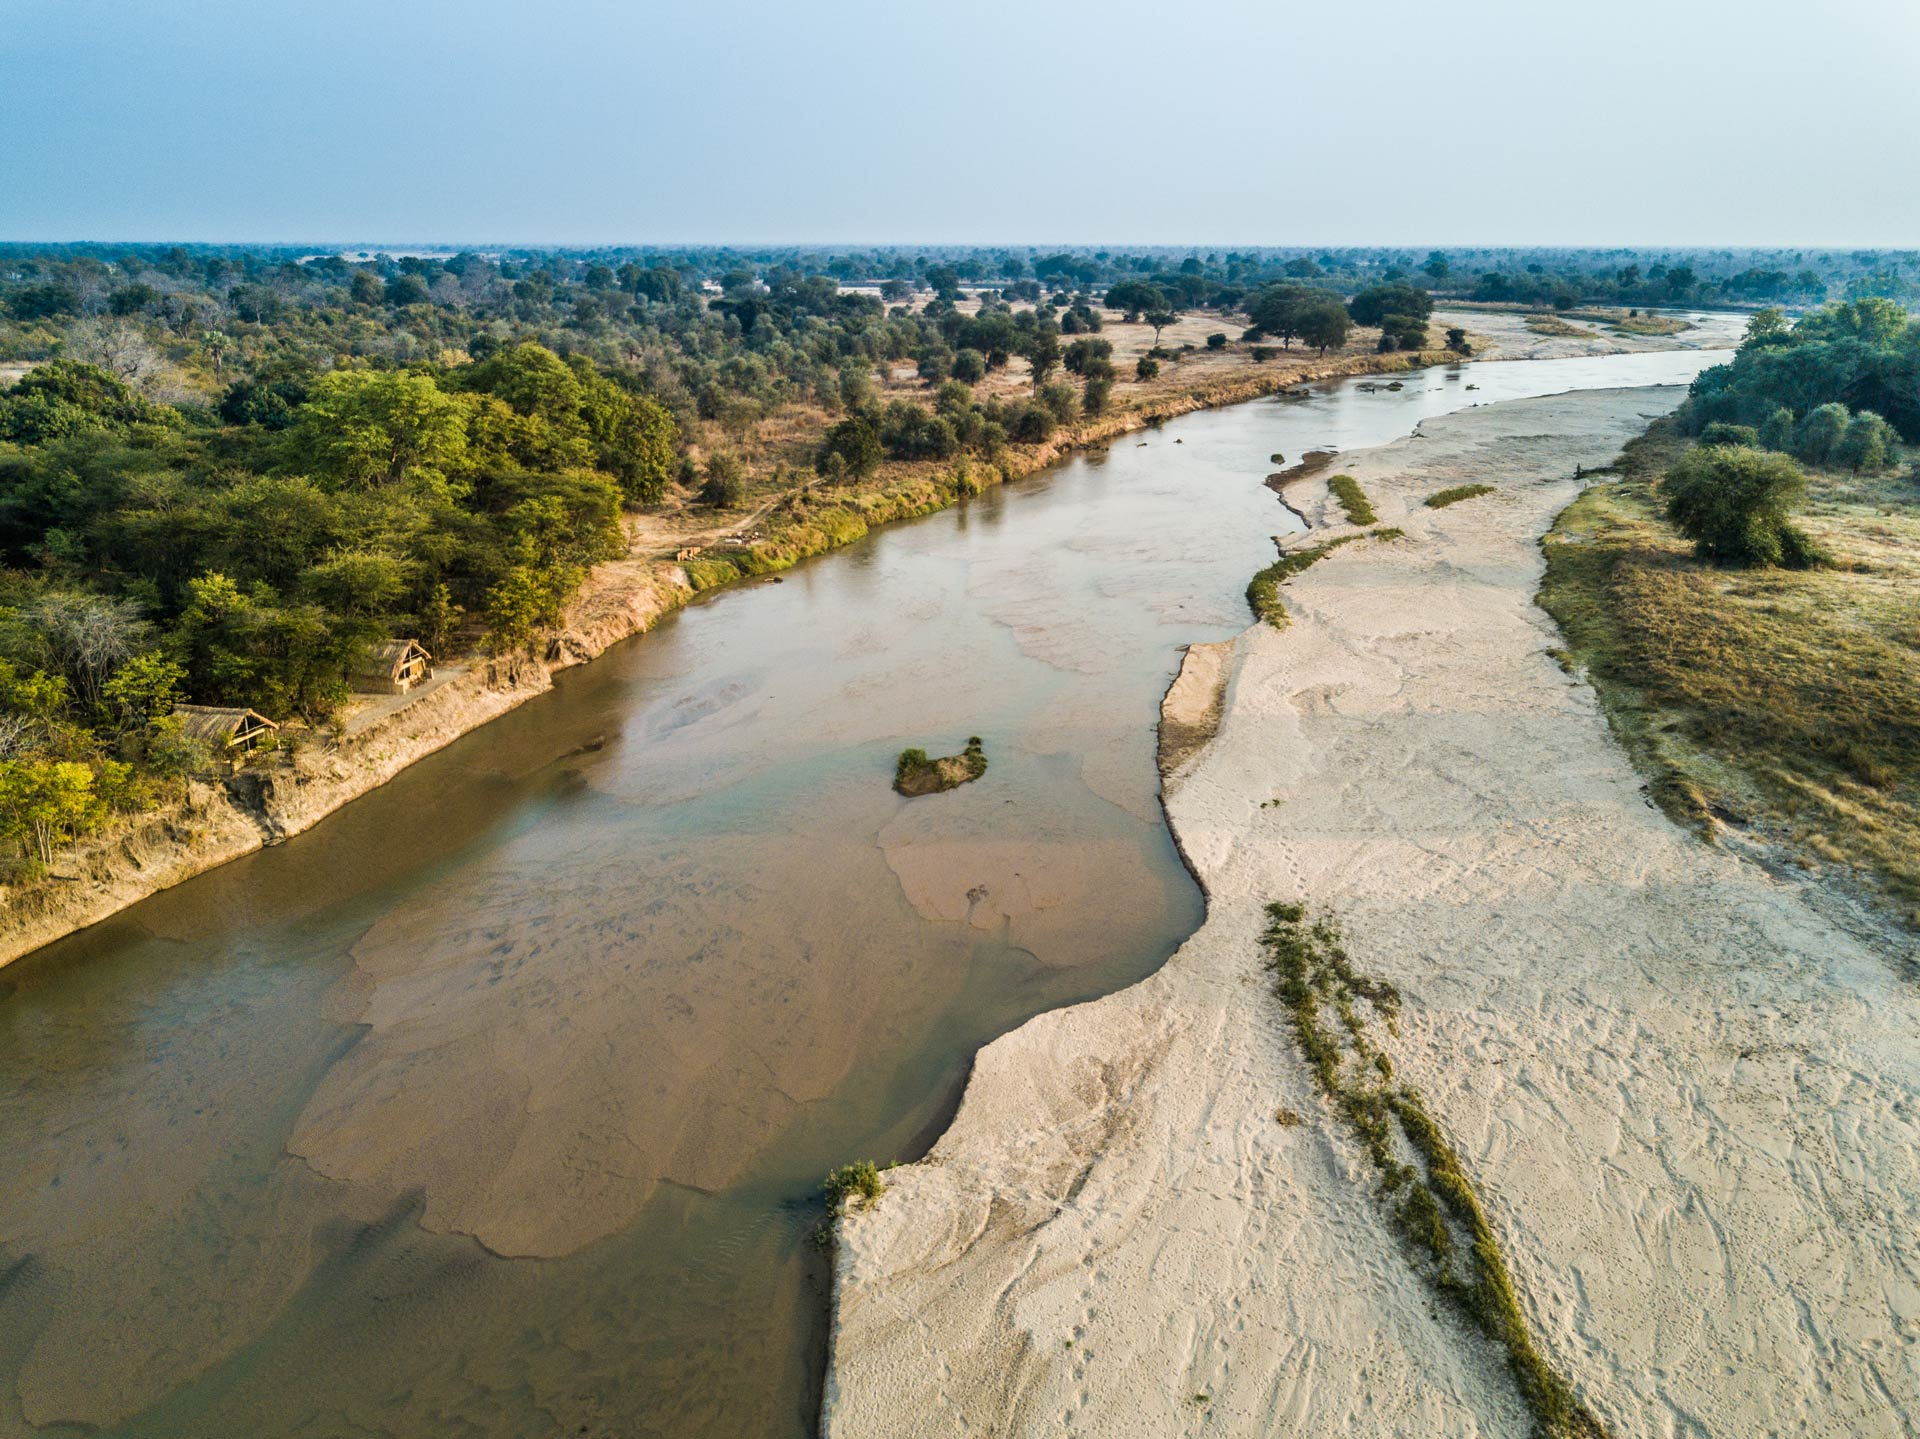 An arial view of Remote Africa Safaris Takwela Camp at the confluence of the Luangwa and Mwaleshi Rivers